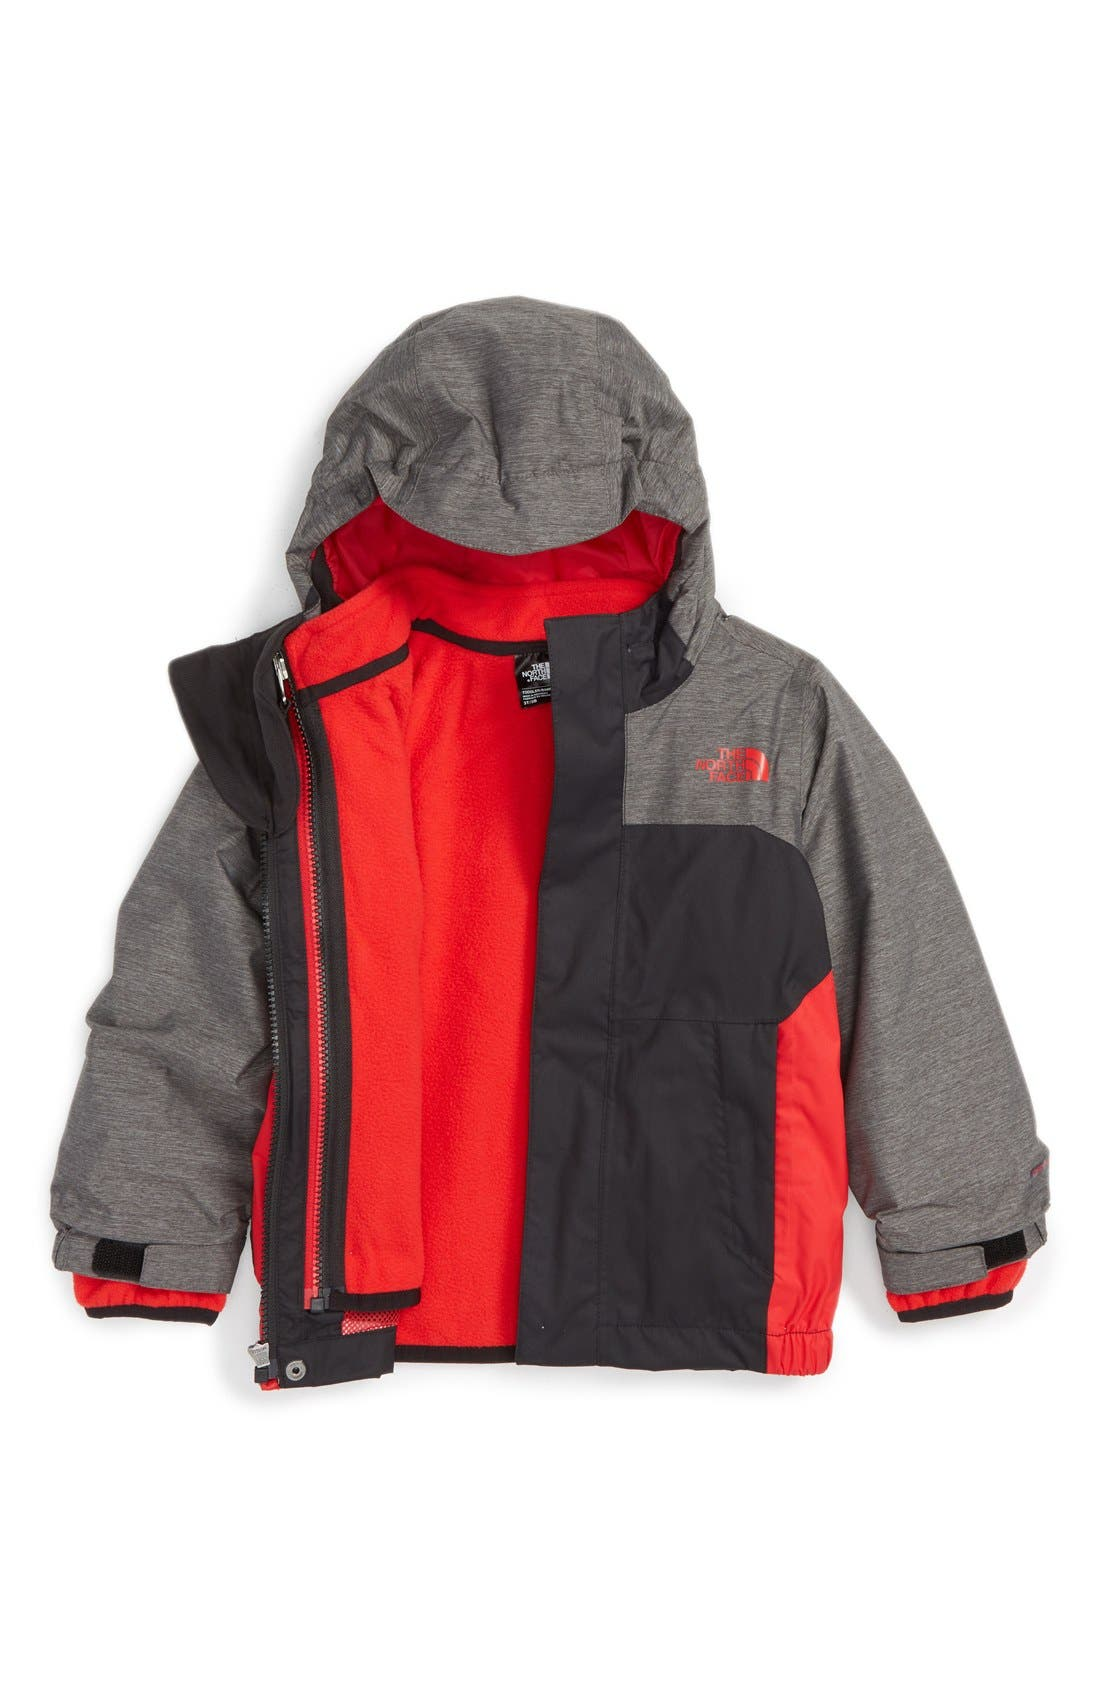 Main Image - The North Face 'Vortex' TriClimate® Waterproof 3-in-1 Jacket (Toddler Boys & Little Boys)